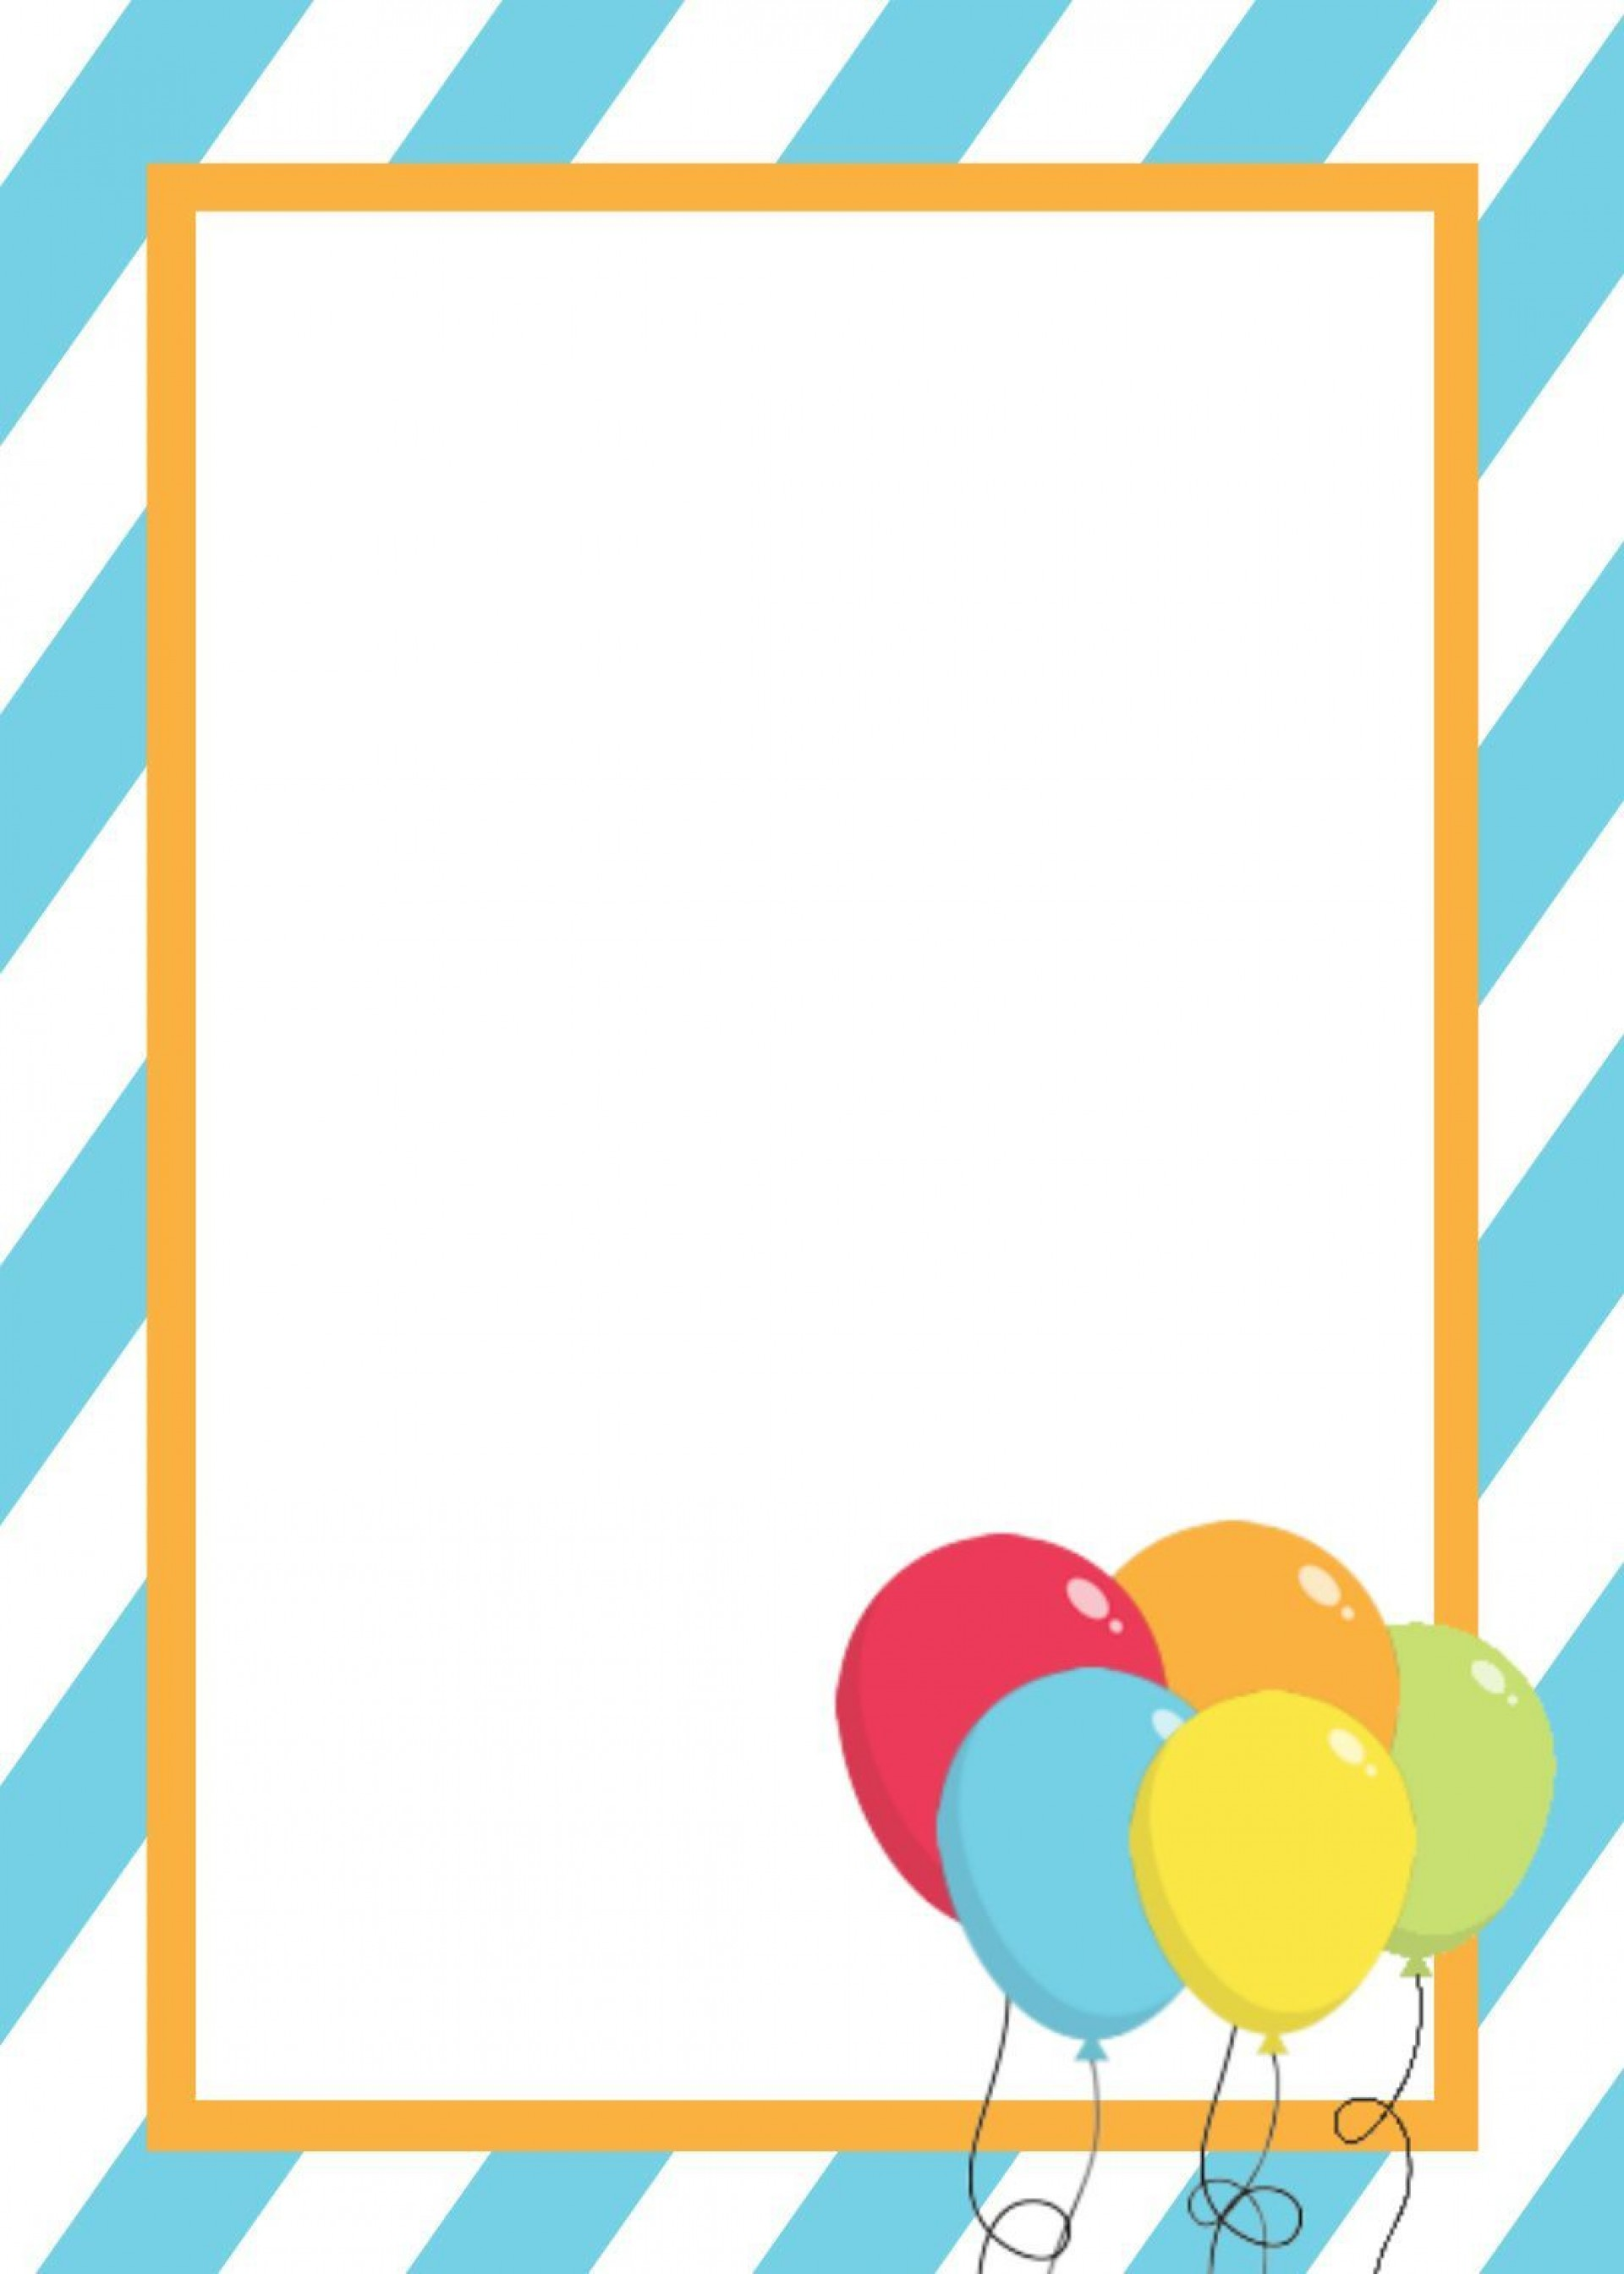 002 Stunning Blank Birthday Card Template For Word Photo  Free1920